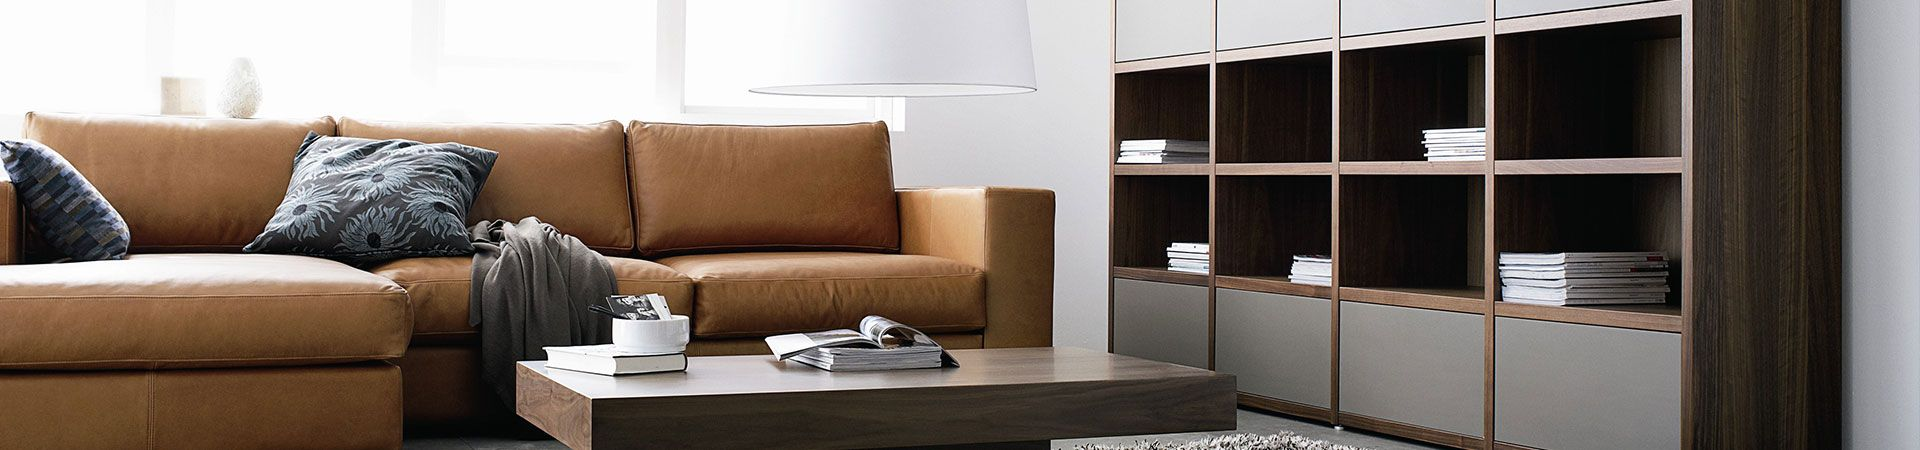 BoConcept goes live with Lasernet on a Dynamics AX 2012 platform